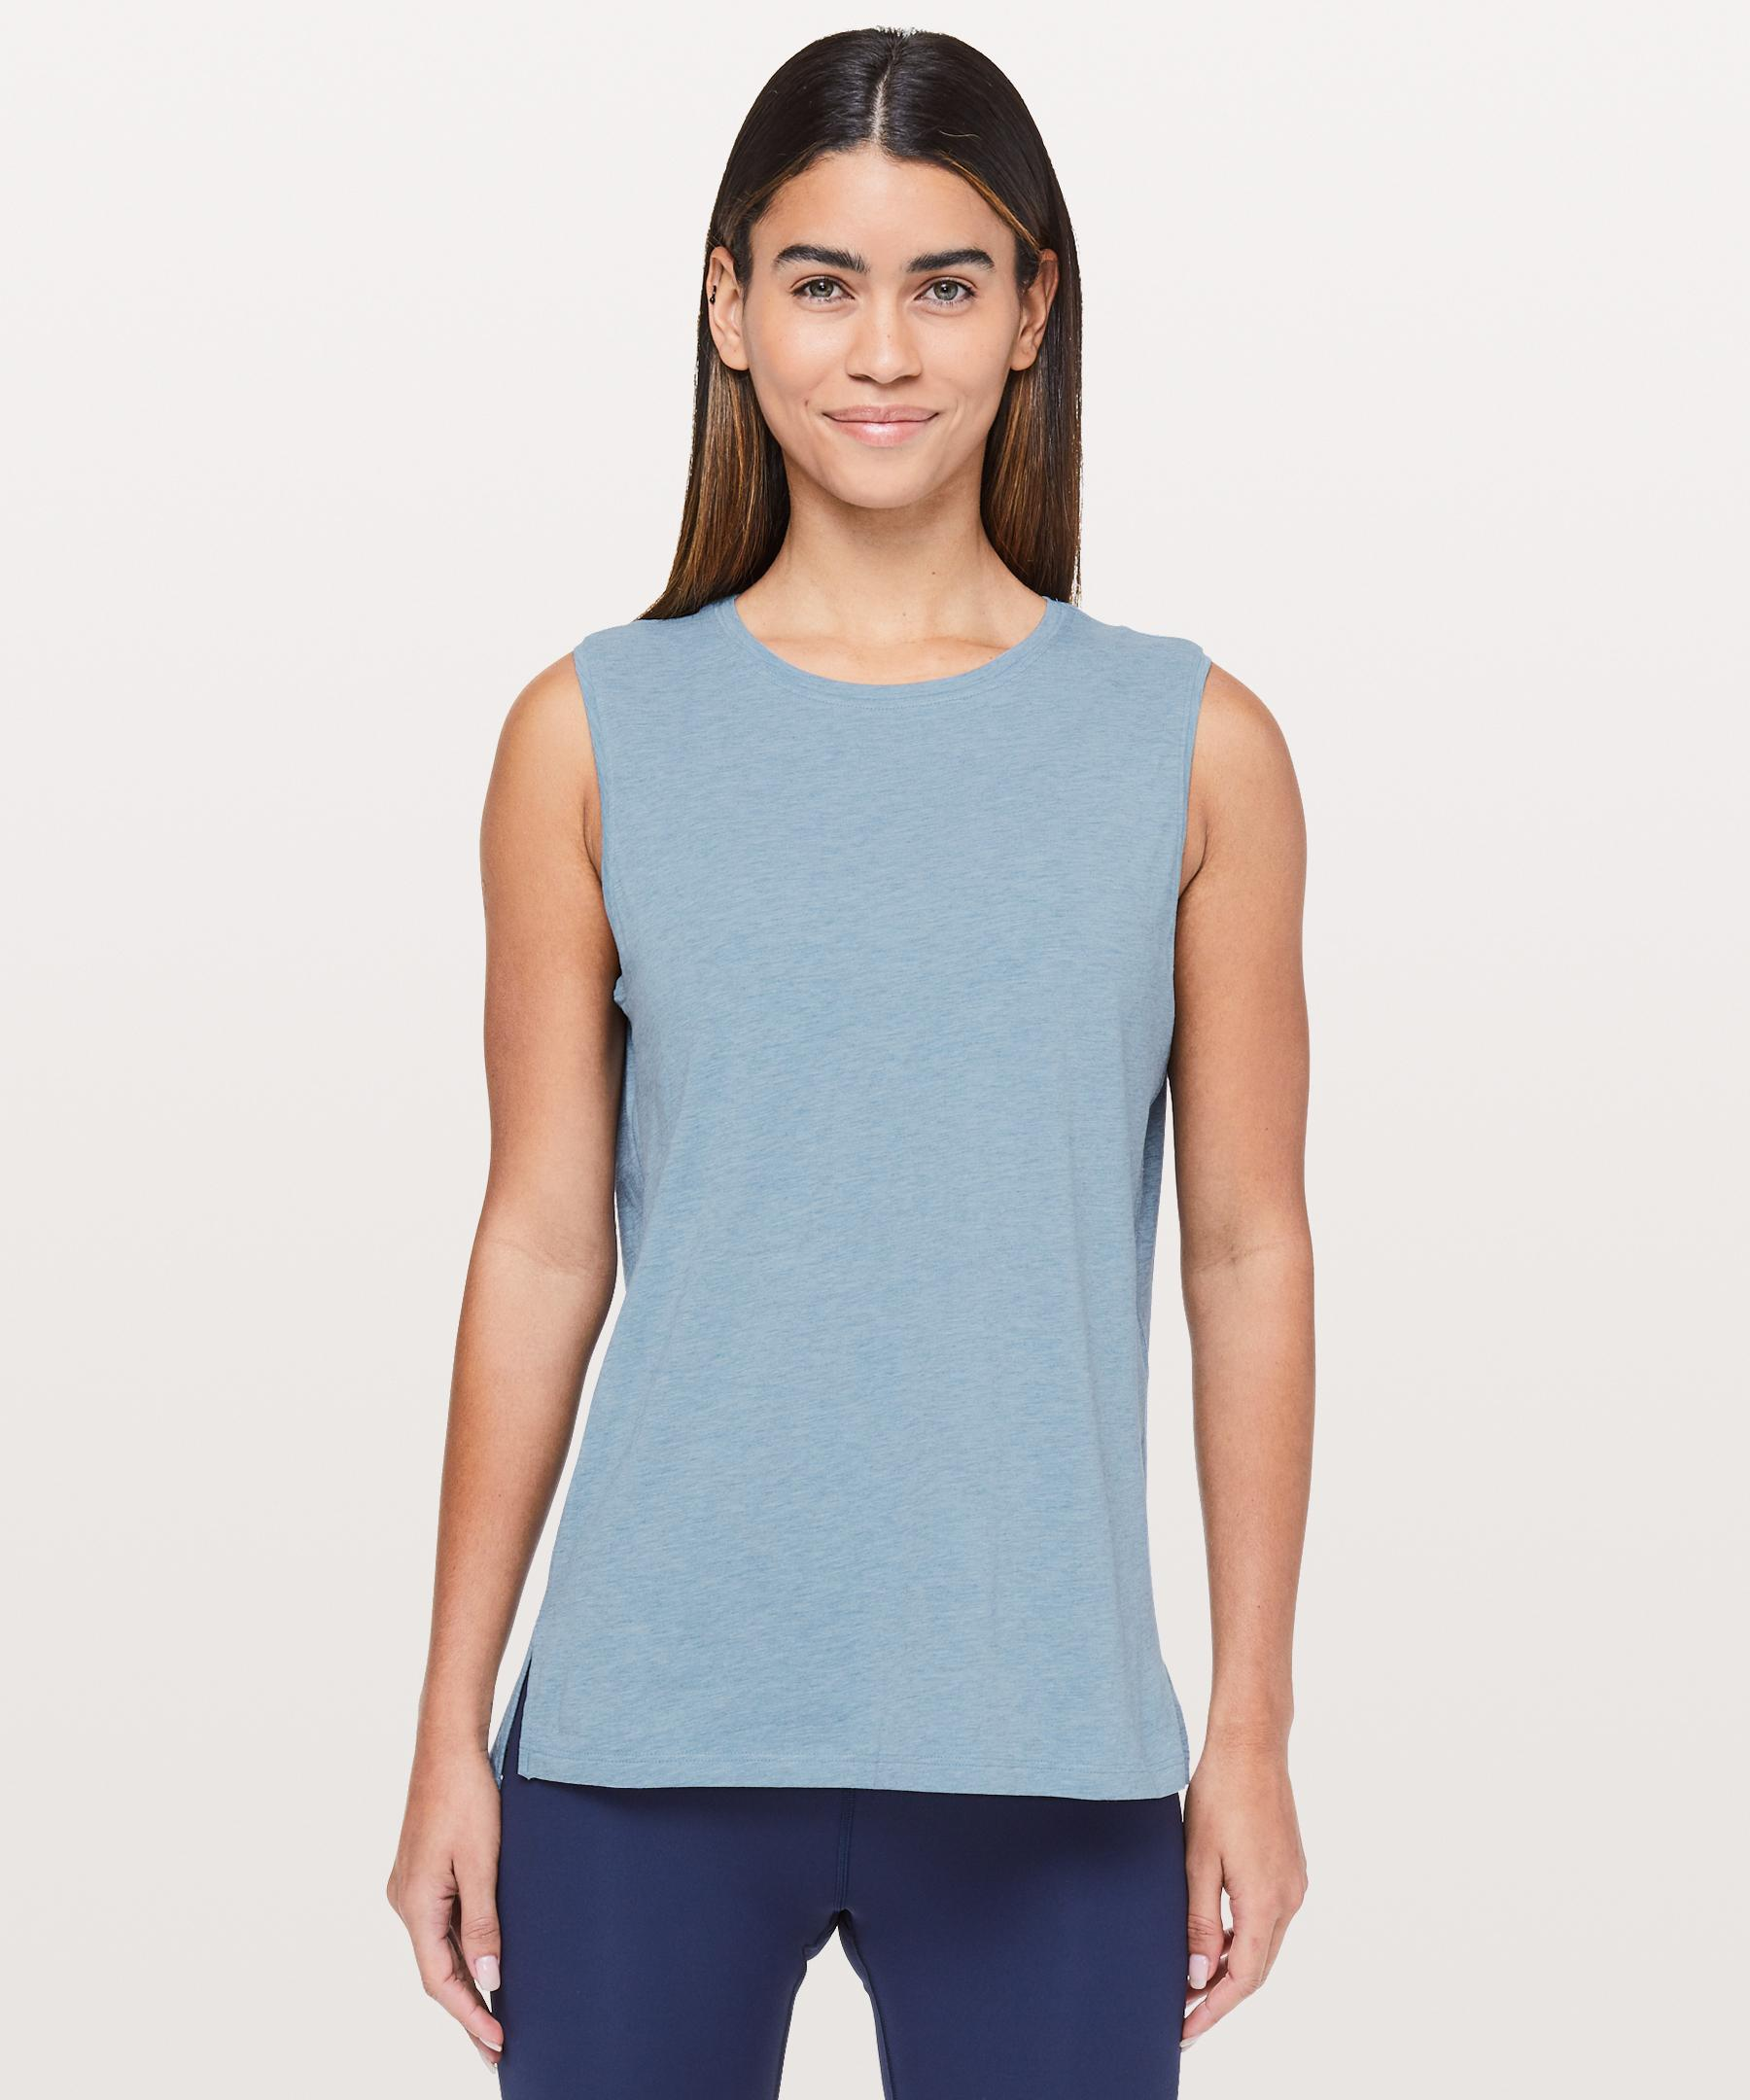 e4900f5a8e011c Lyst - lululemon athletica Love Sleeveless Tank in Blue